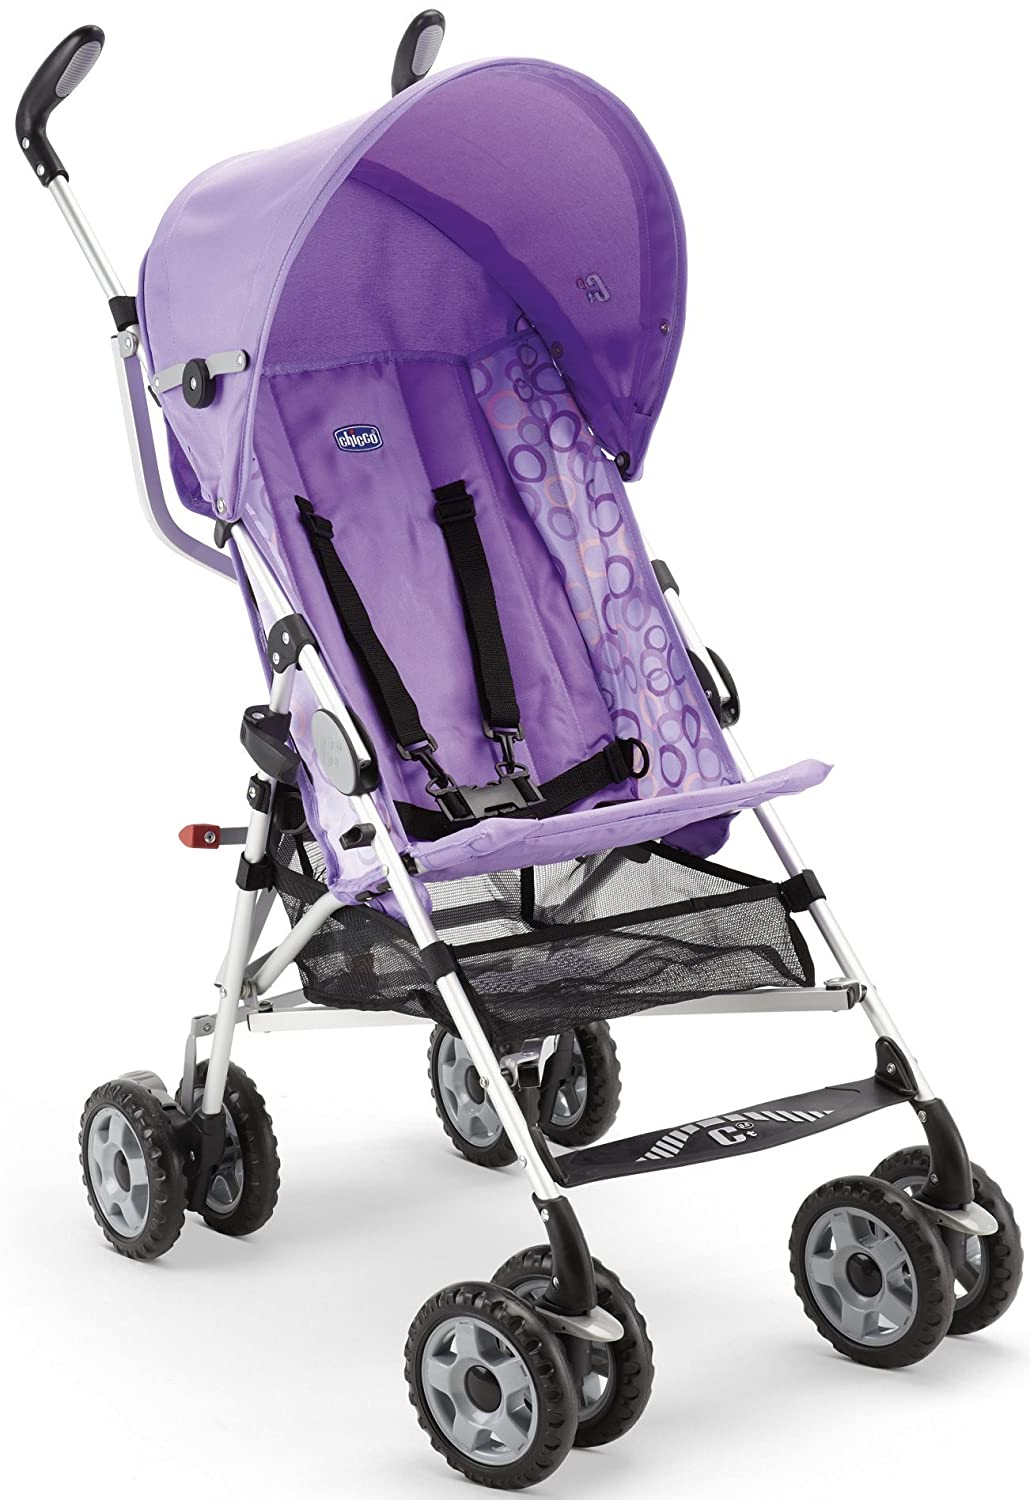 Chicco CT 0,6 Kinderwagen, Jasper: Amazon.de: Baby